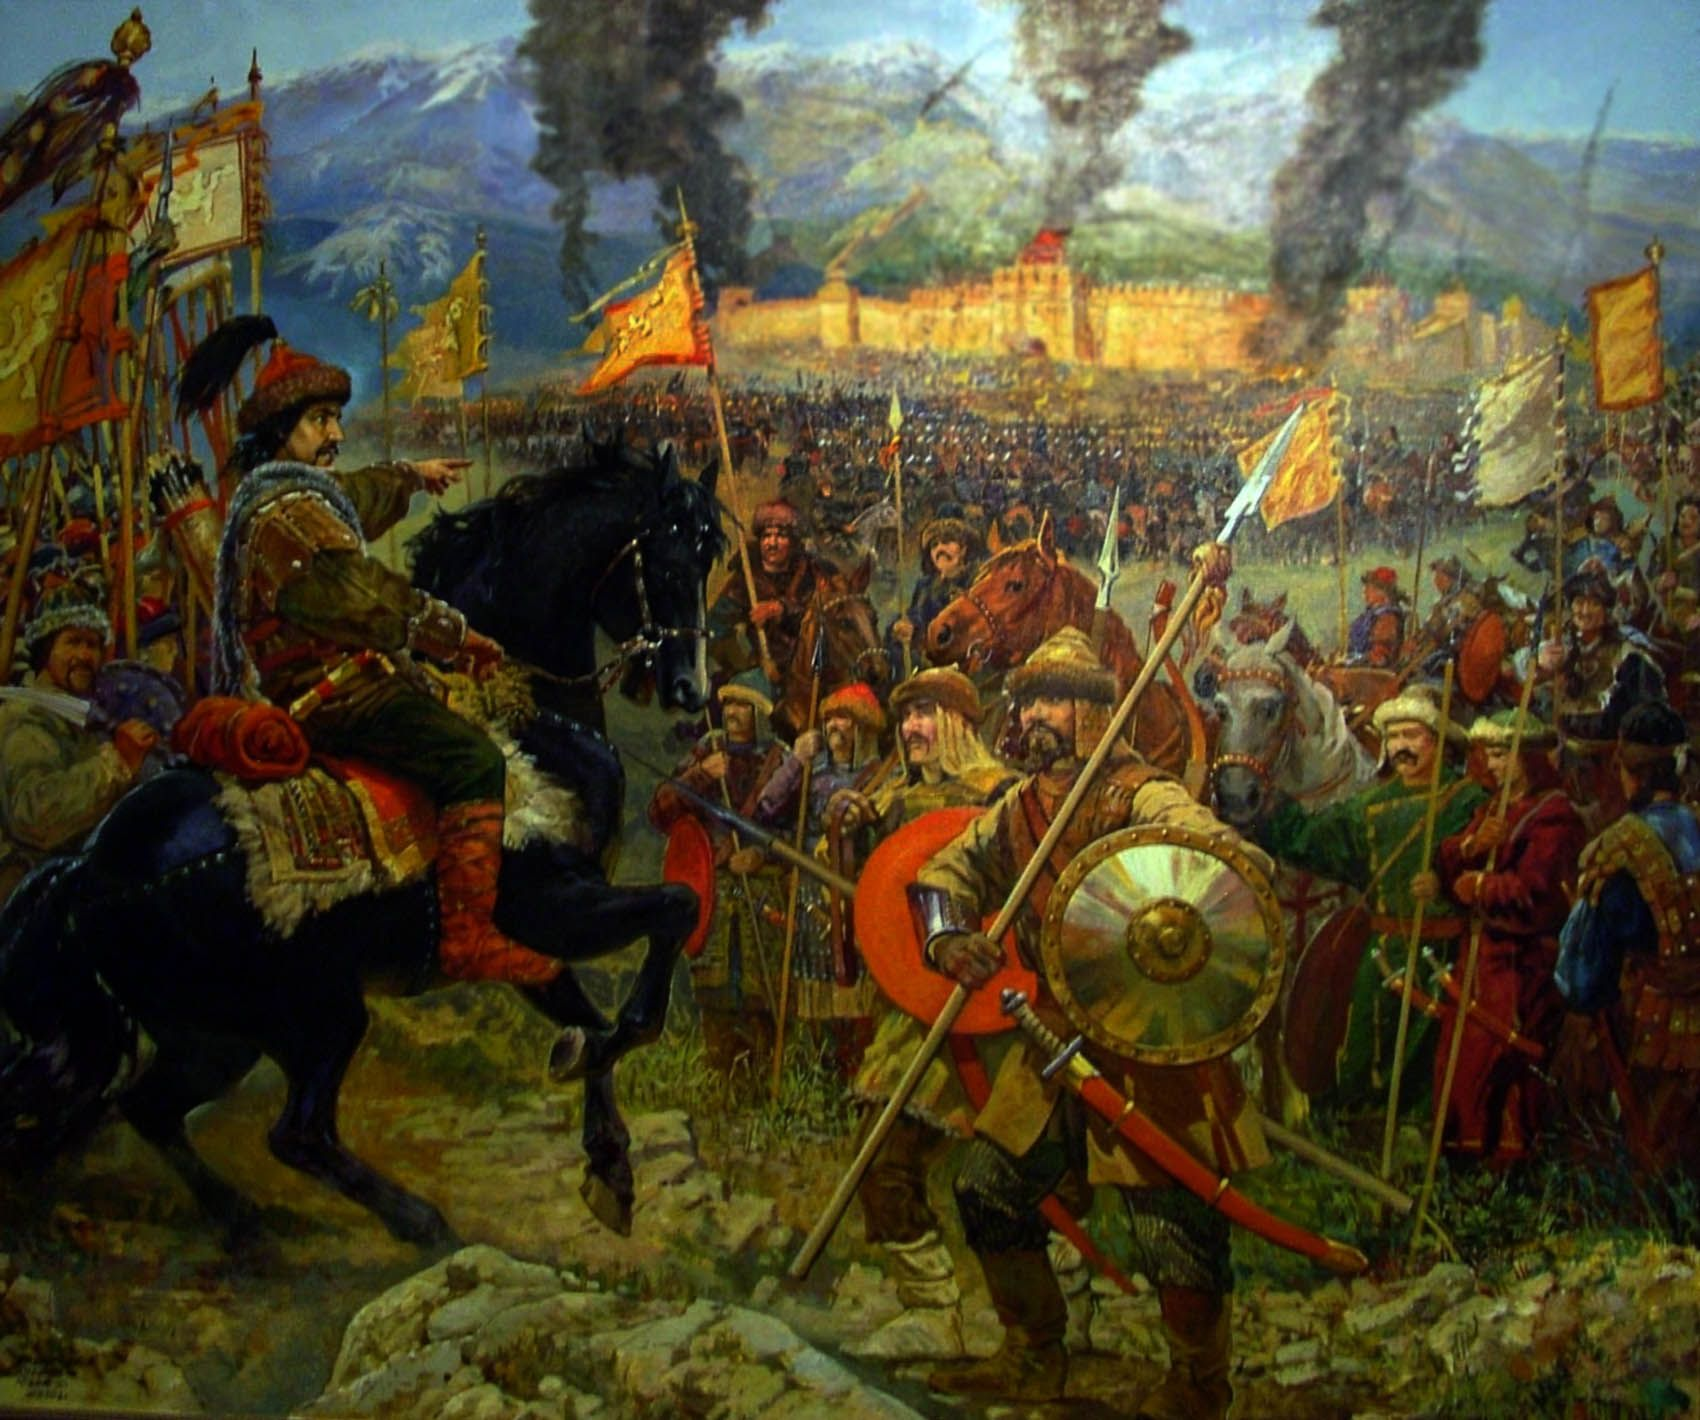 the turks and mongols The mongols and the mamluks in the thirteenth century still another threat to the muslim world appeared in the land beyond the oxus: the mongols led by genghis khan, a confederation of nomadic tribes which had already conquered china now attacked the muslims.